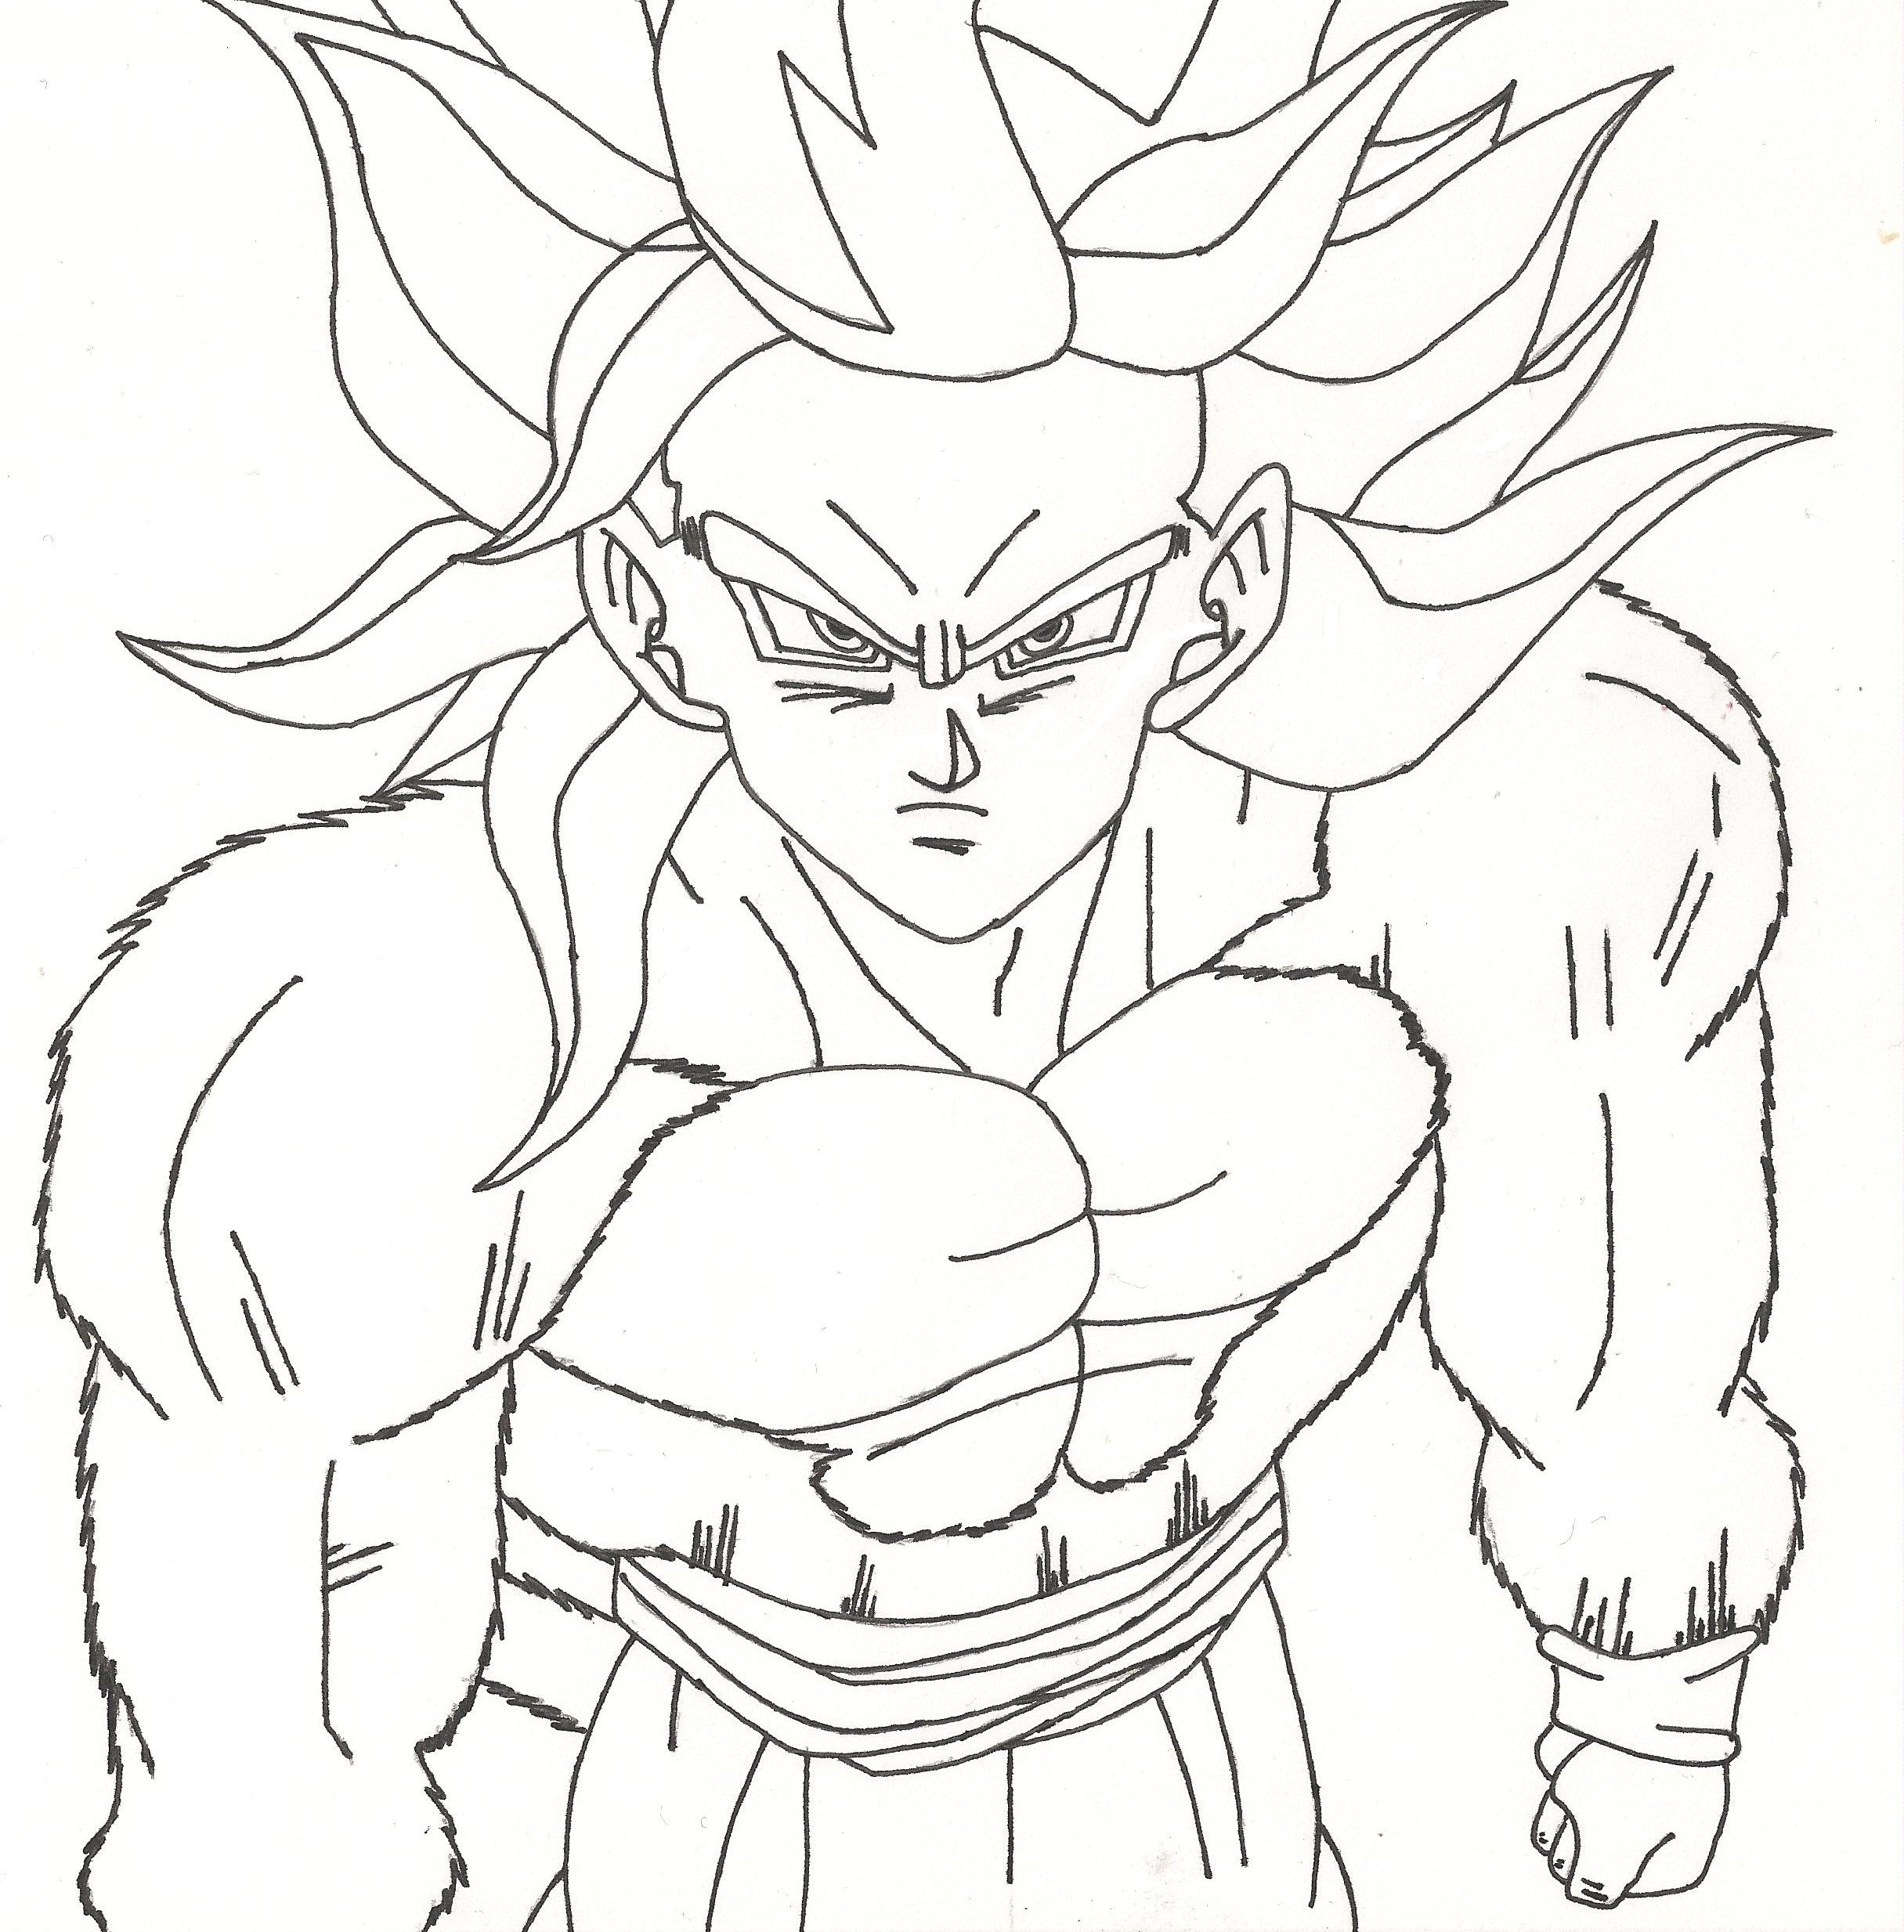 Goku Super Saiyan 4 Coloring Pages At Getdrawings Free Download